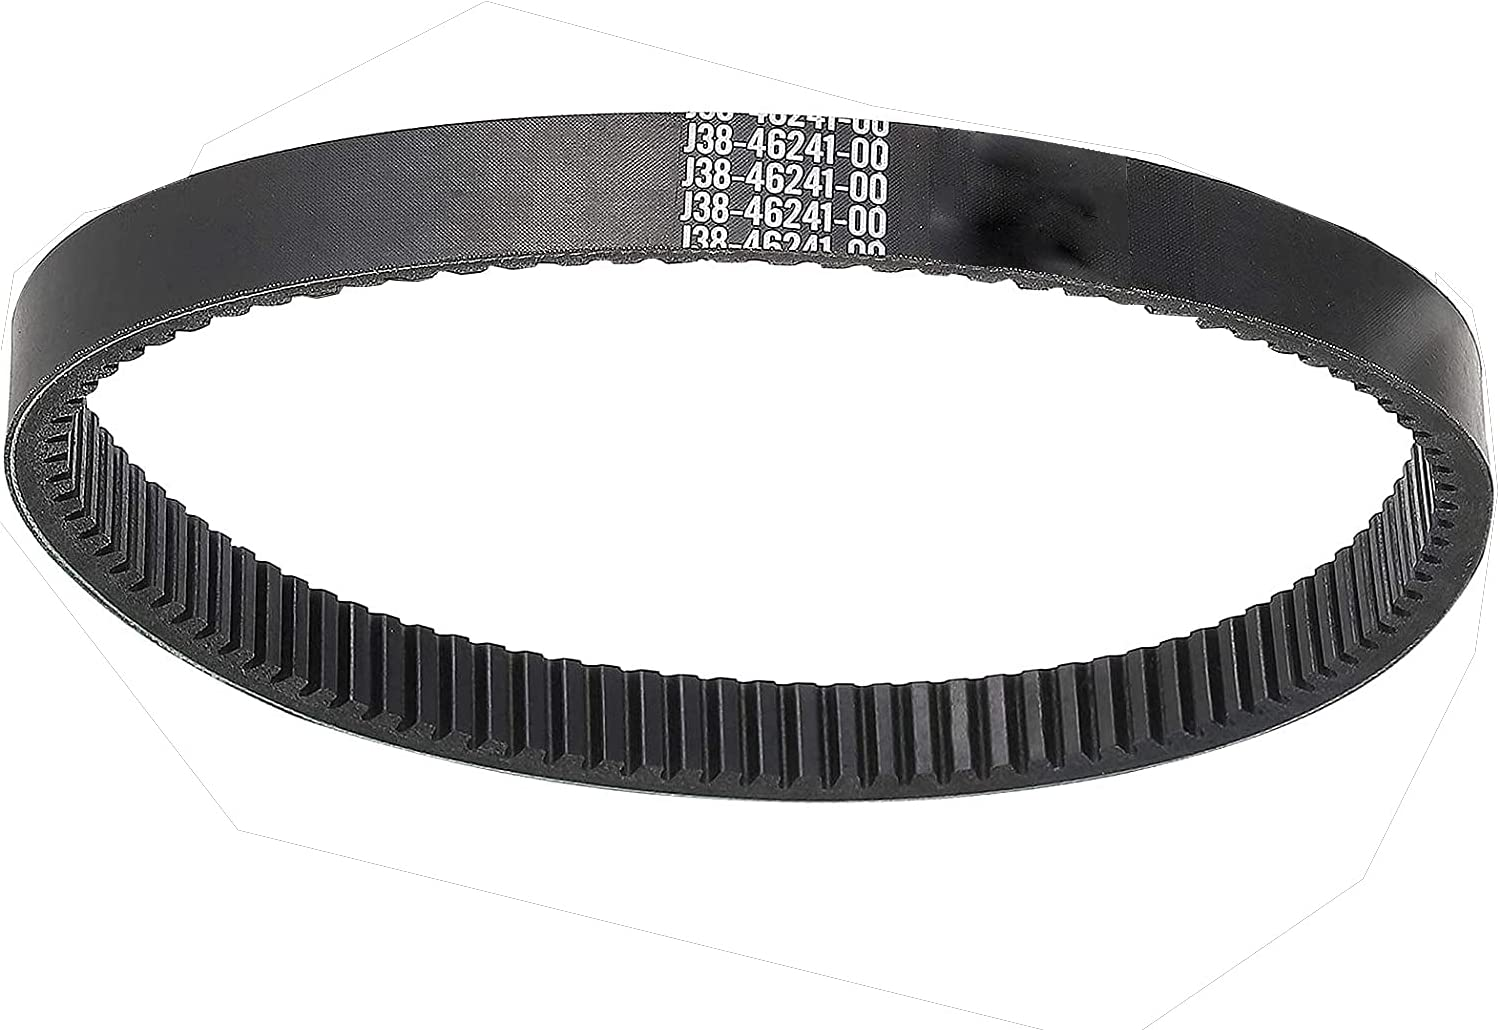 Yamaha Drive Super special price Belt for G2-G22 G29 Gas Golf Cycle Kansas City Mall 4 cart Re